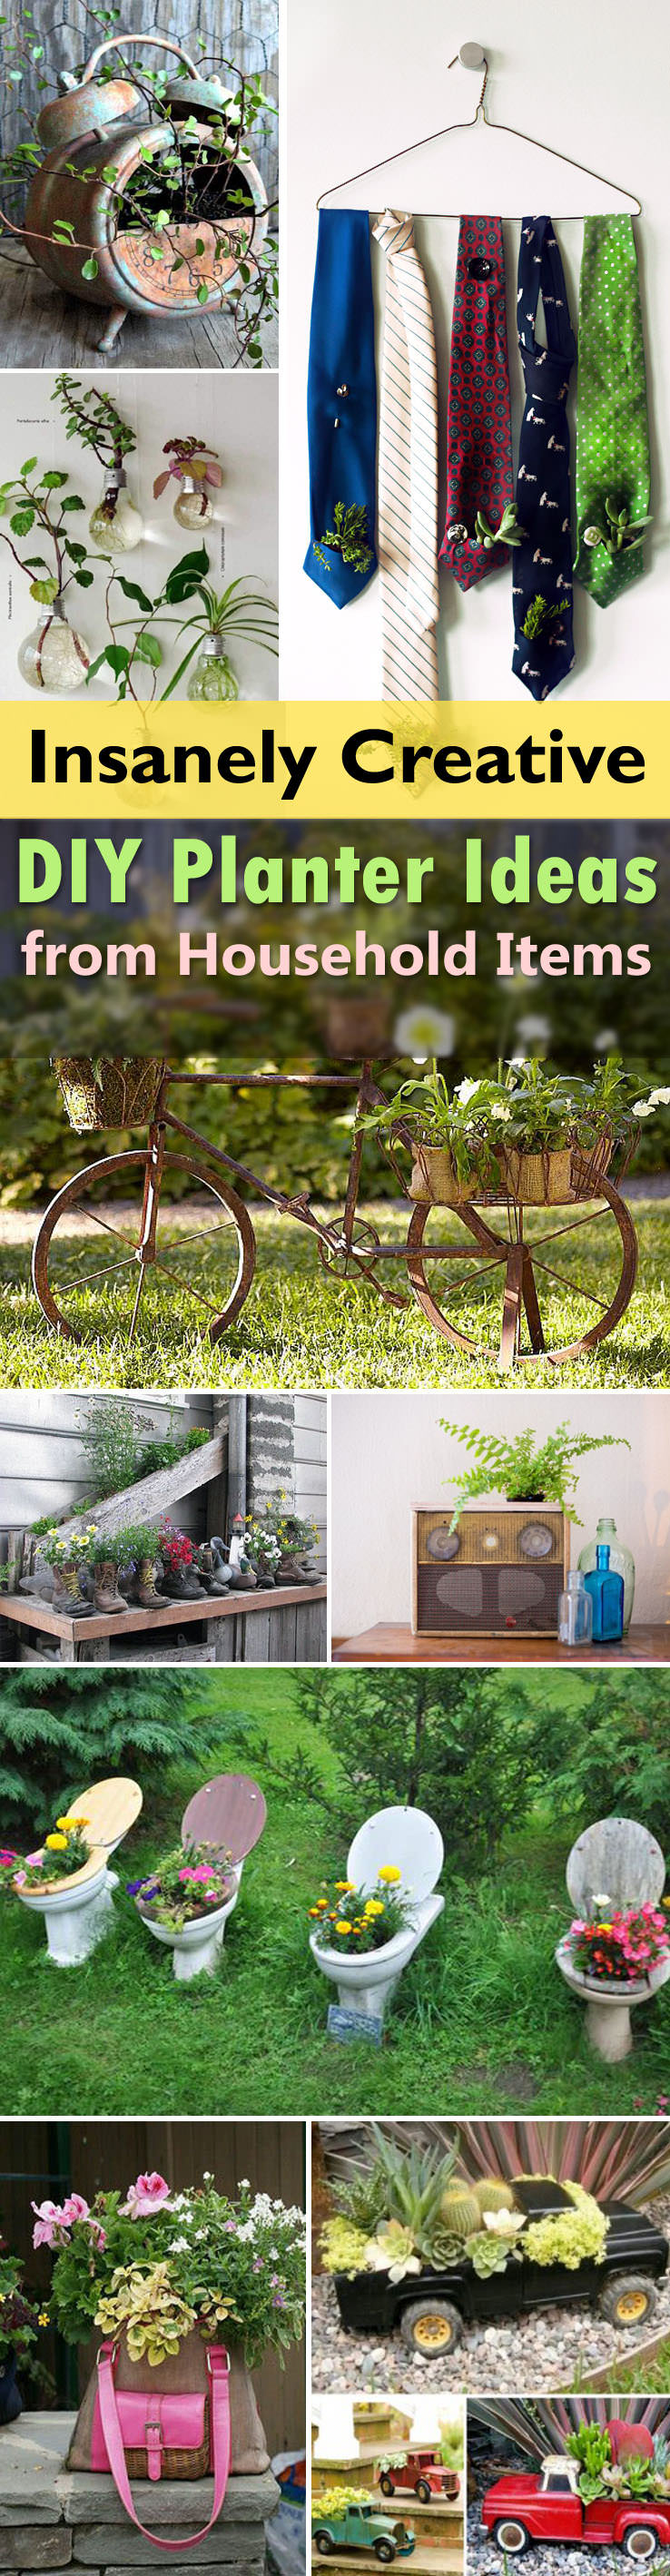 Design Planter Ideas 29 insanely creative diy planter ideas from household items see these that you can make with their